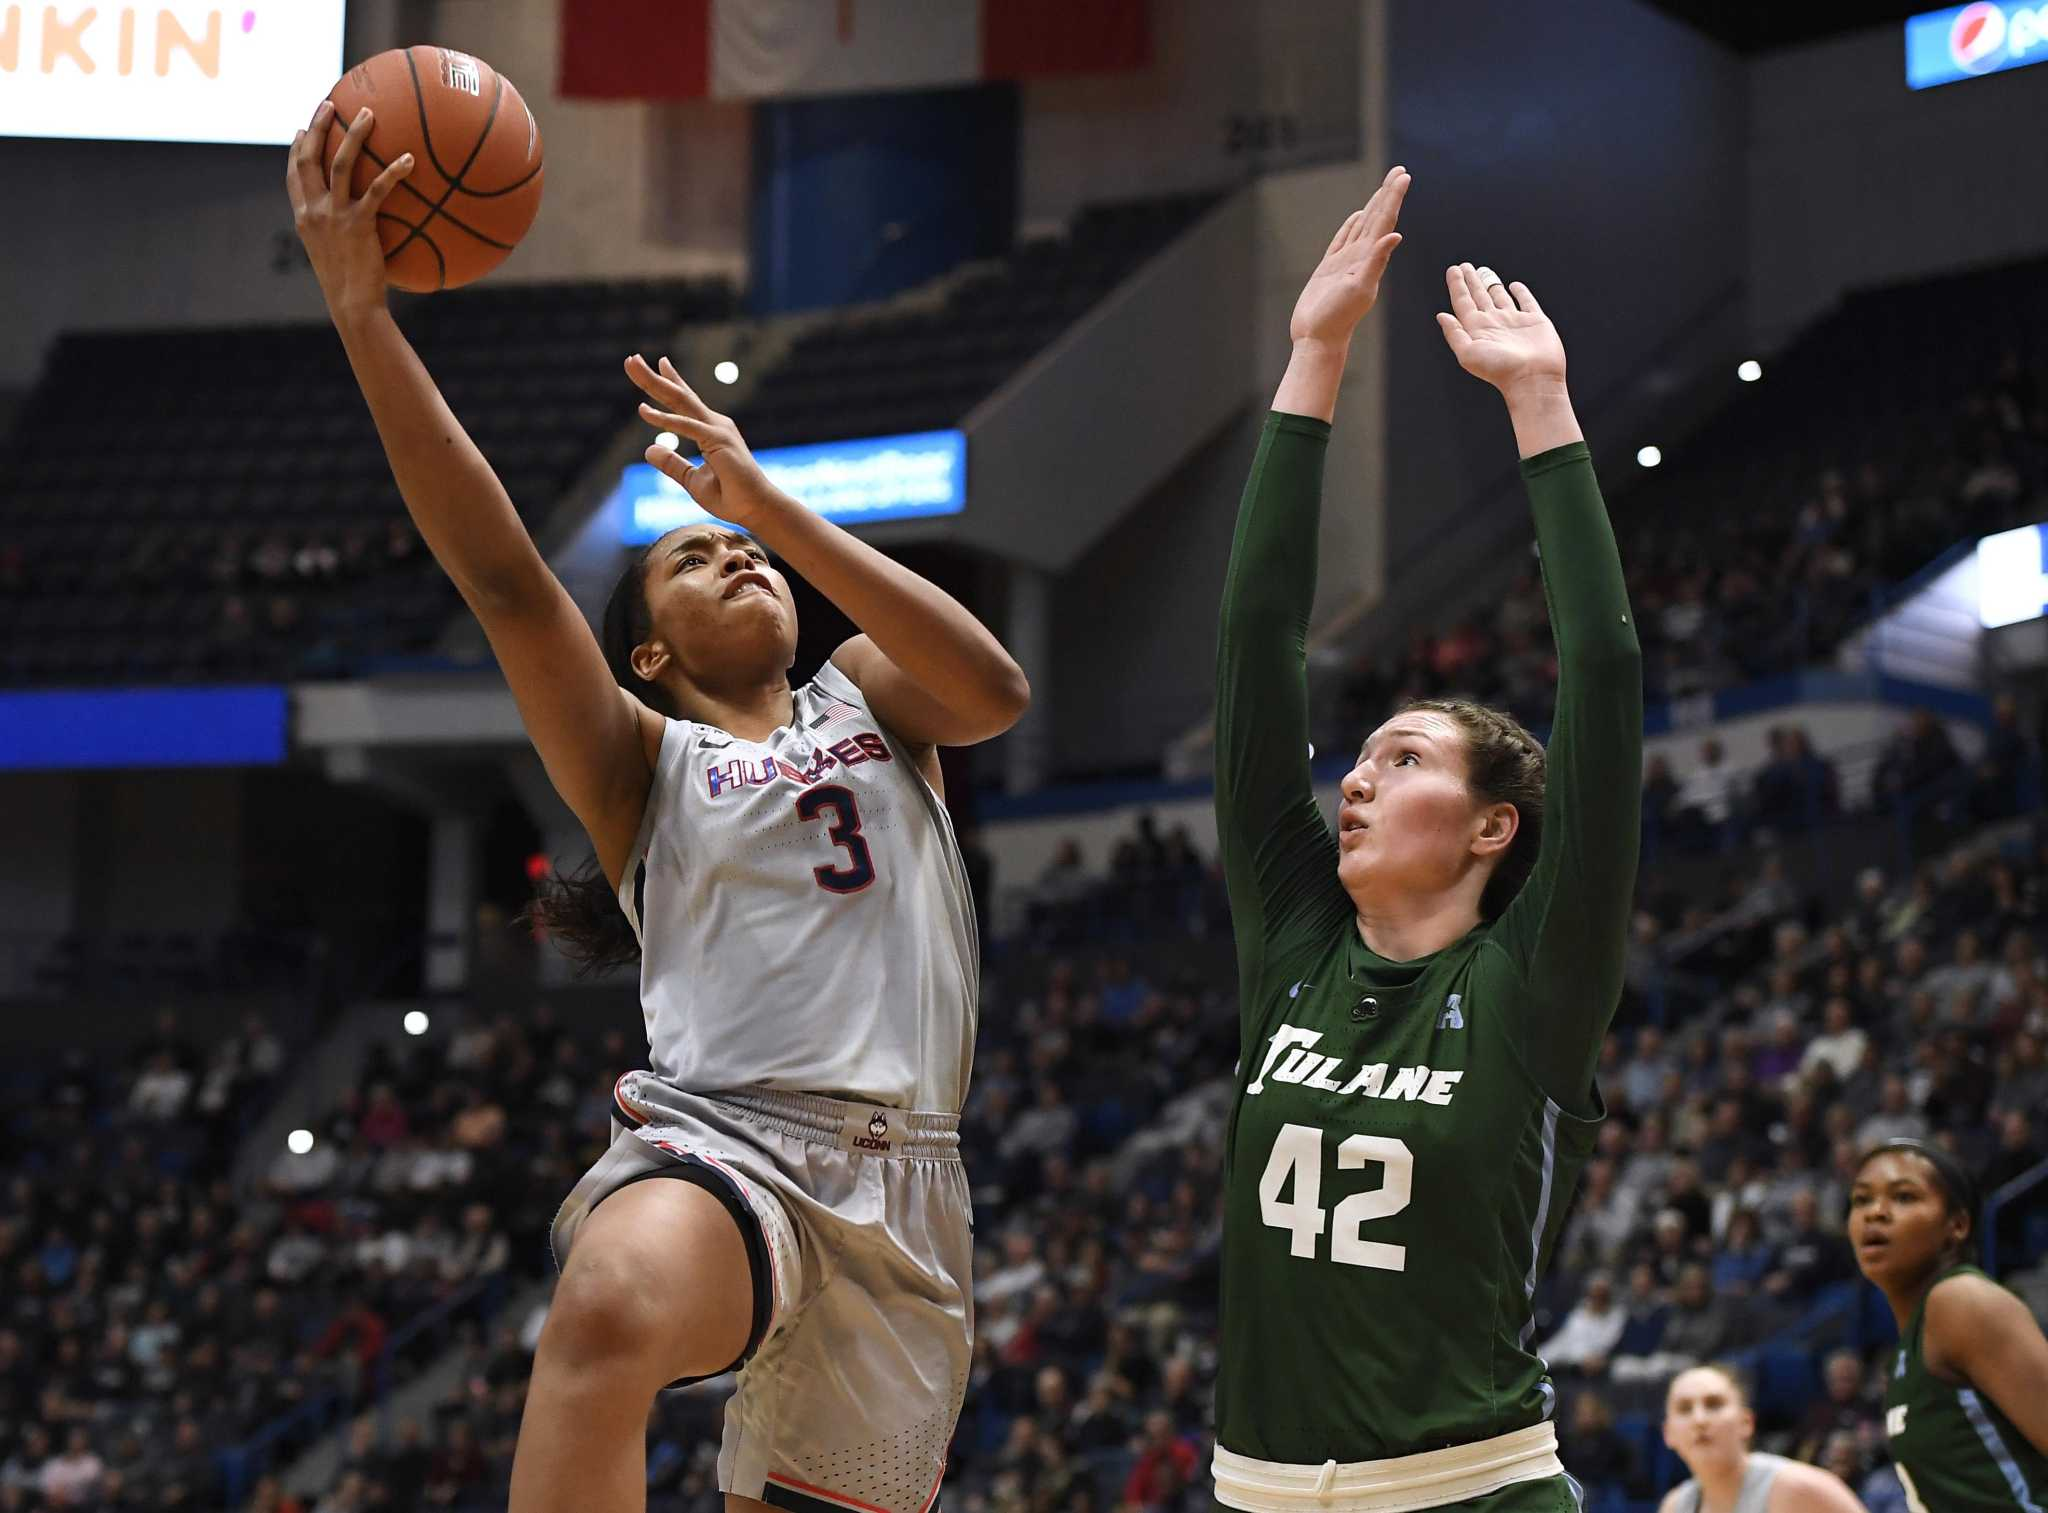 UConn's Megan Walker named to WBCA All-America team, now eligible for Huskies of Honor